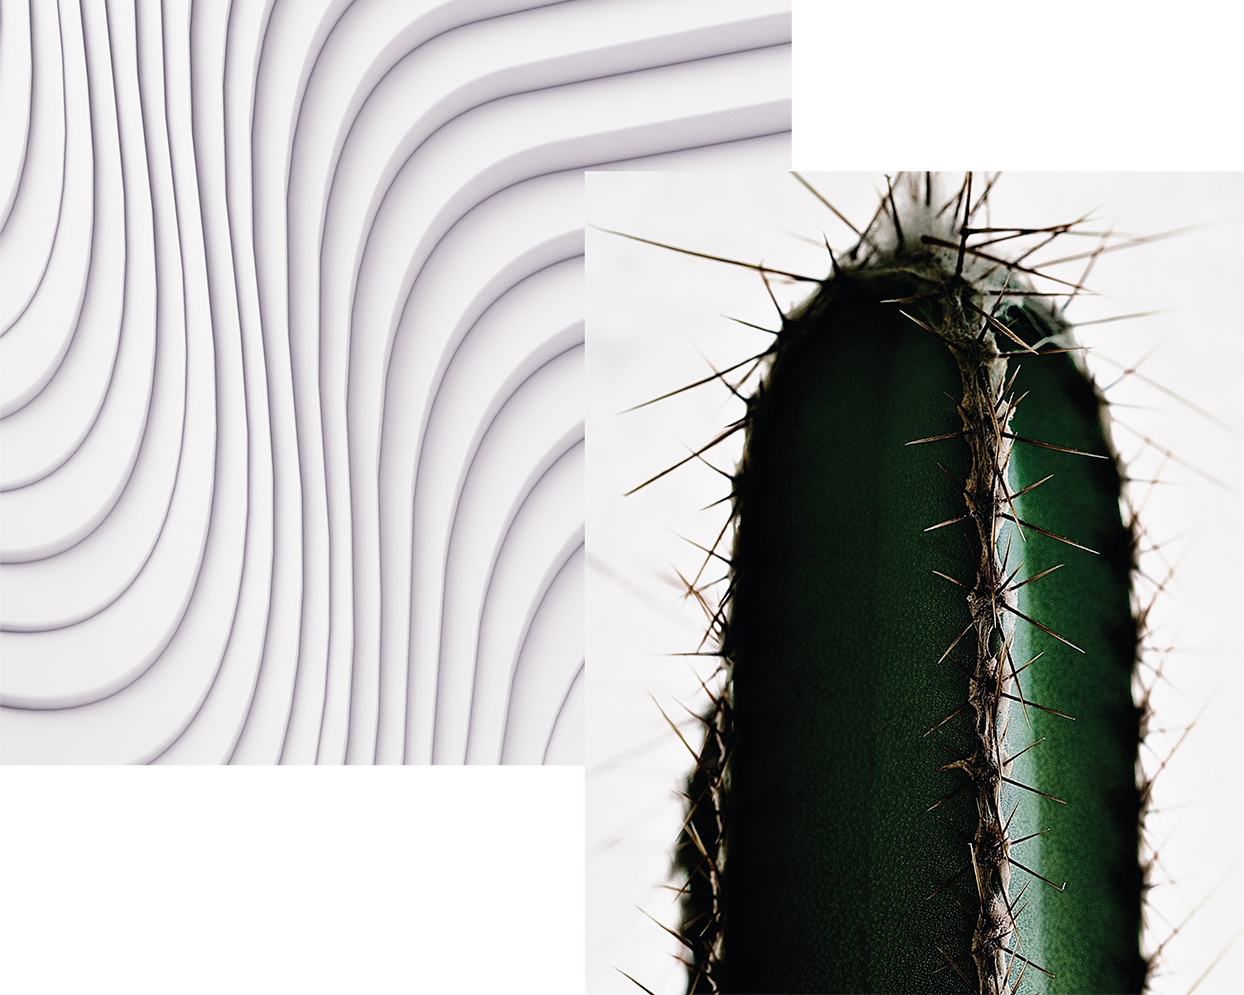 conceptual white waves graphic next to close up of cactus